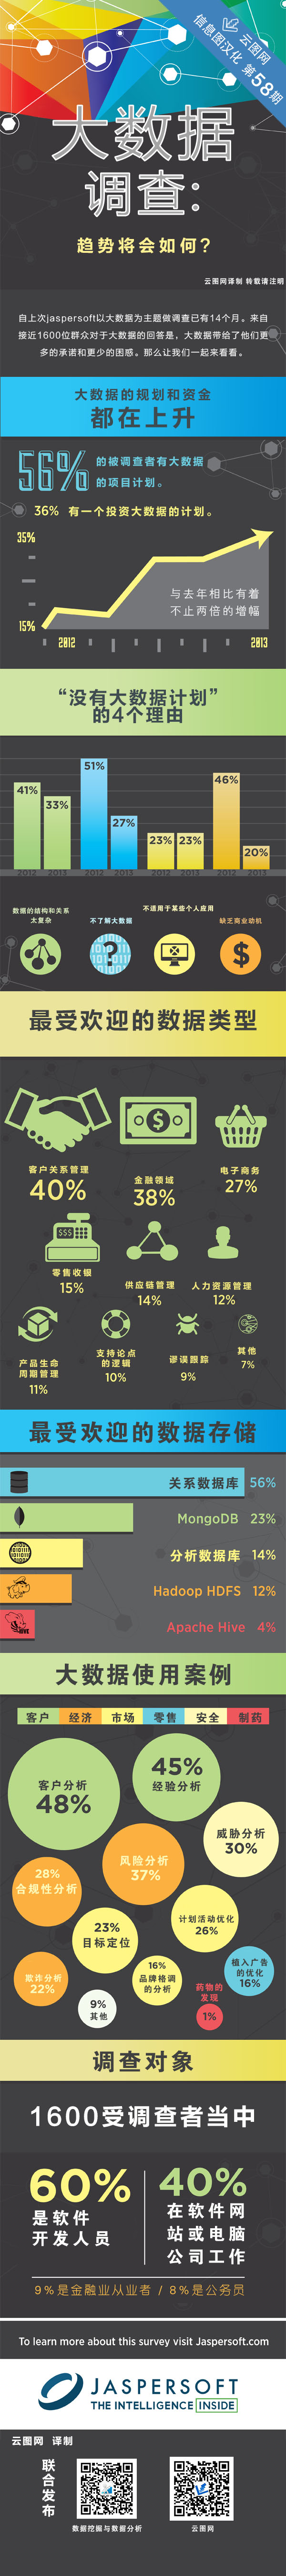 14 0116 Big Data Survey Infographic